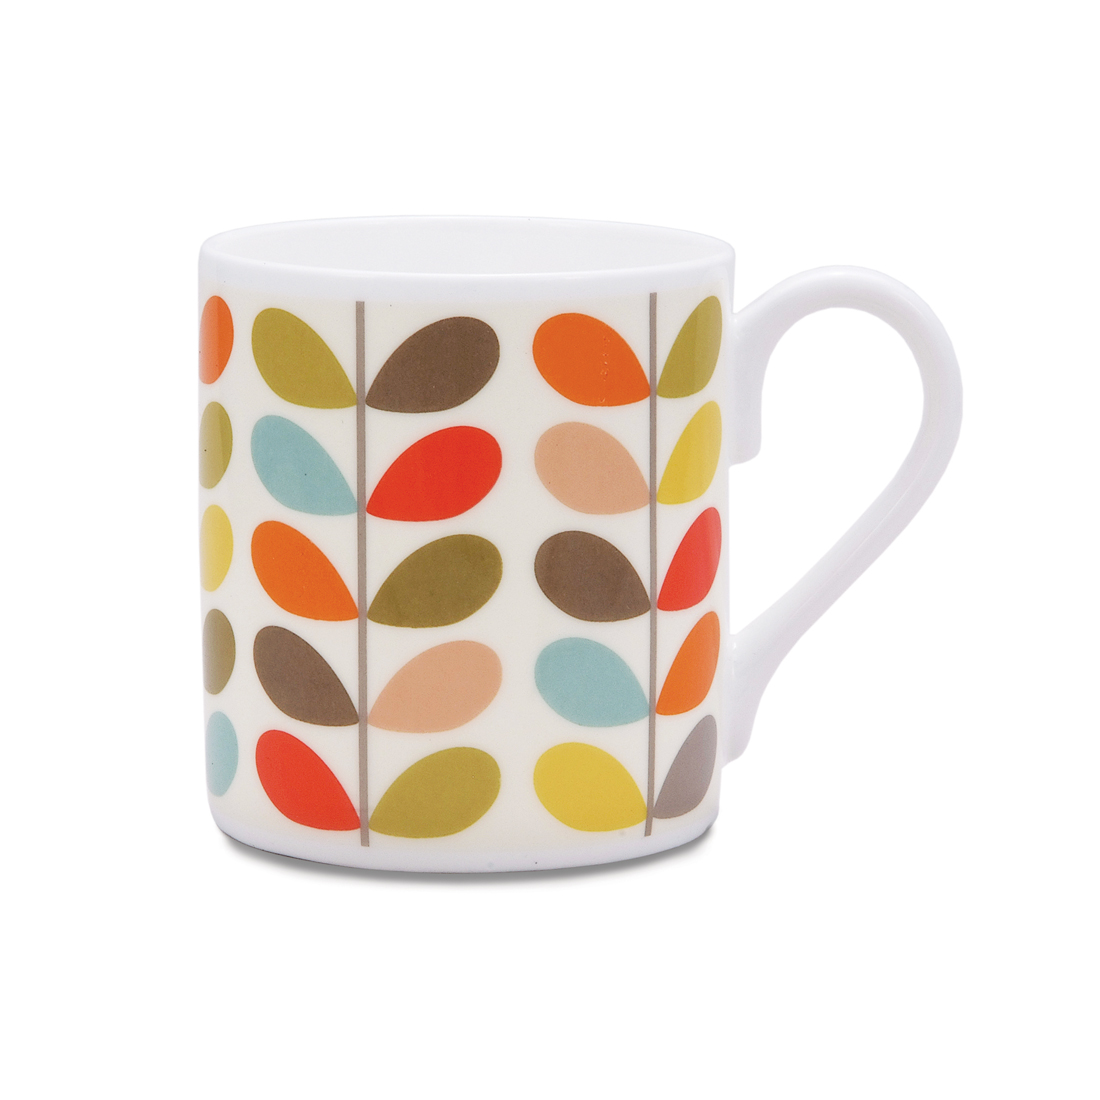 Orla Kiely Mug - New Multi-stem